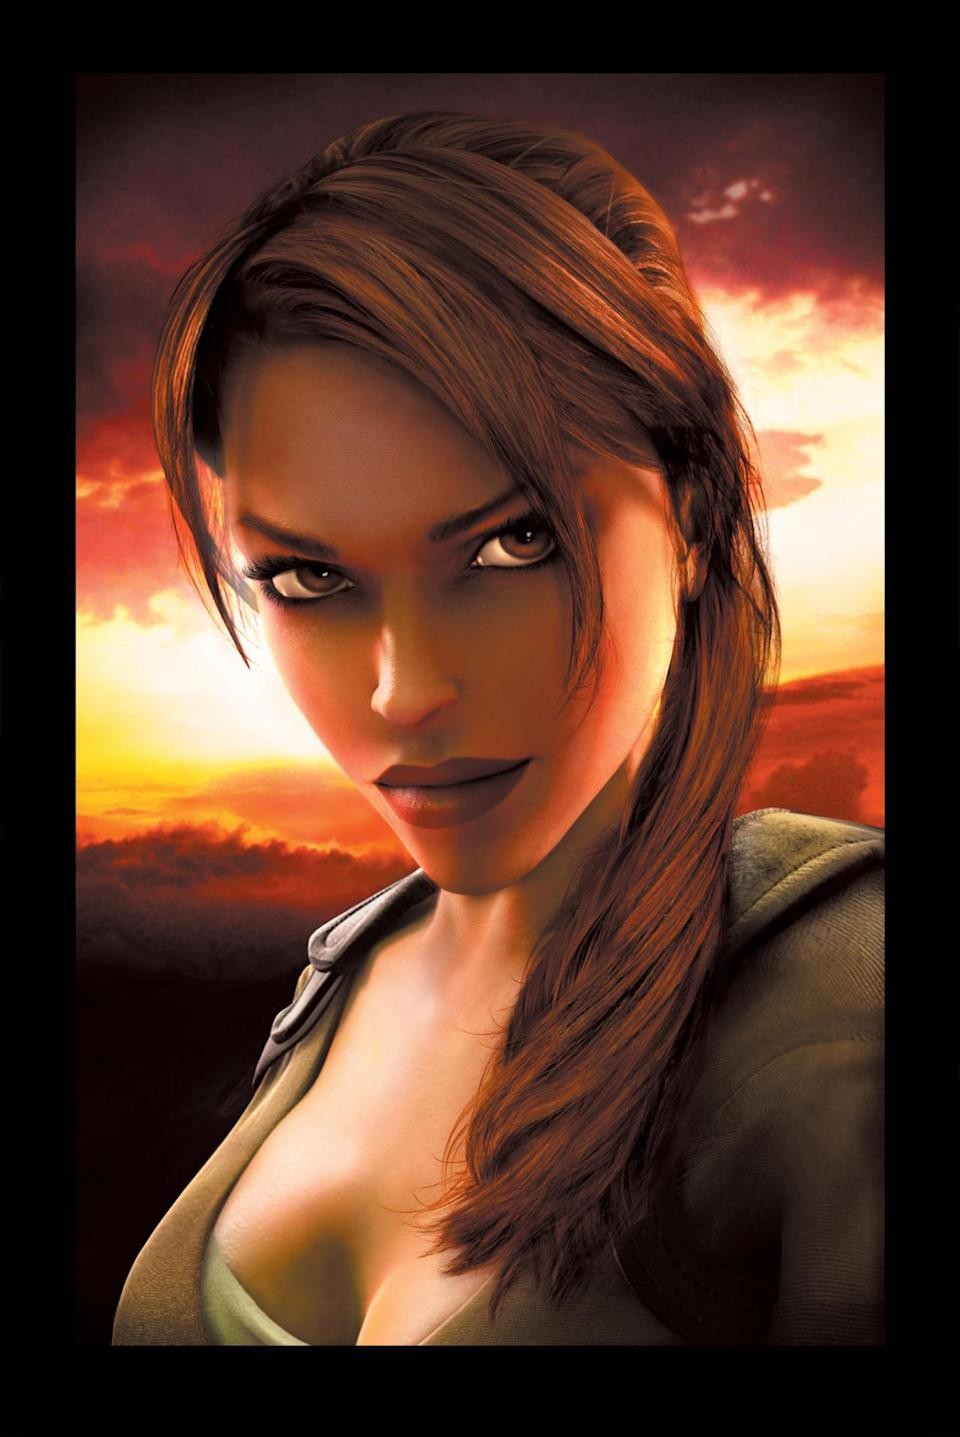 <p>Produced by a new studio (Crystal Dynamics taking over for game originator Core Design), 'Legend' reboots the franchise, ignoring much of the past history of Lara Croft (now voiced by actress Keeley Hawes). Here, Lara gets caught up in a plot that involves the knights of Camelot. It reinvigorates the franchise, scoring the best reviews and sales in years. (Photo: Square Enix) </p>